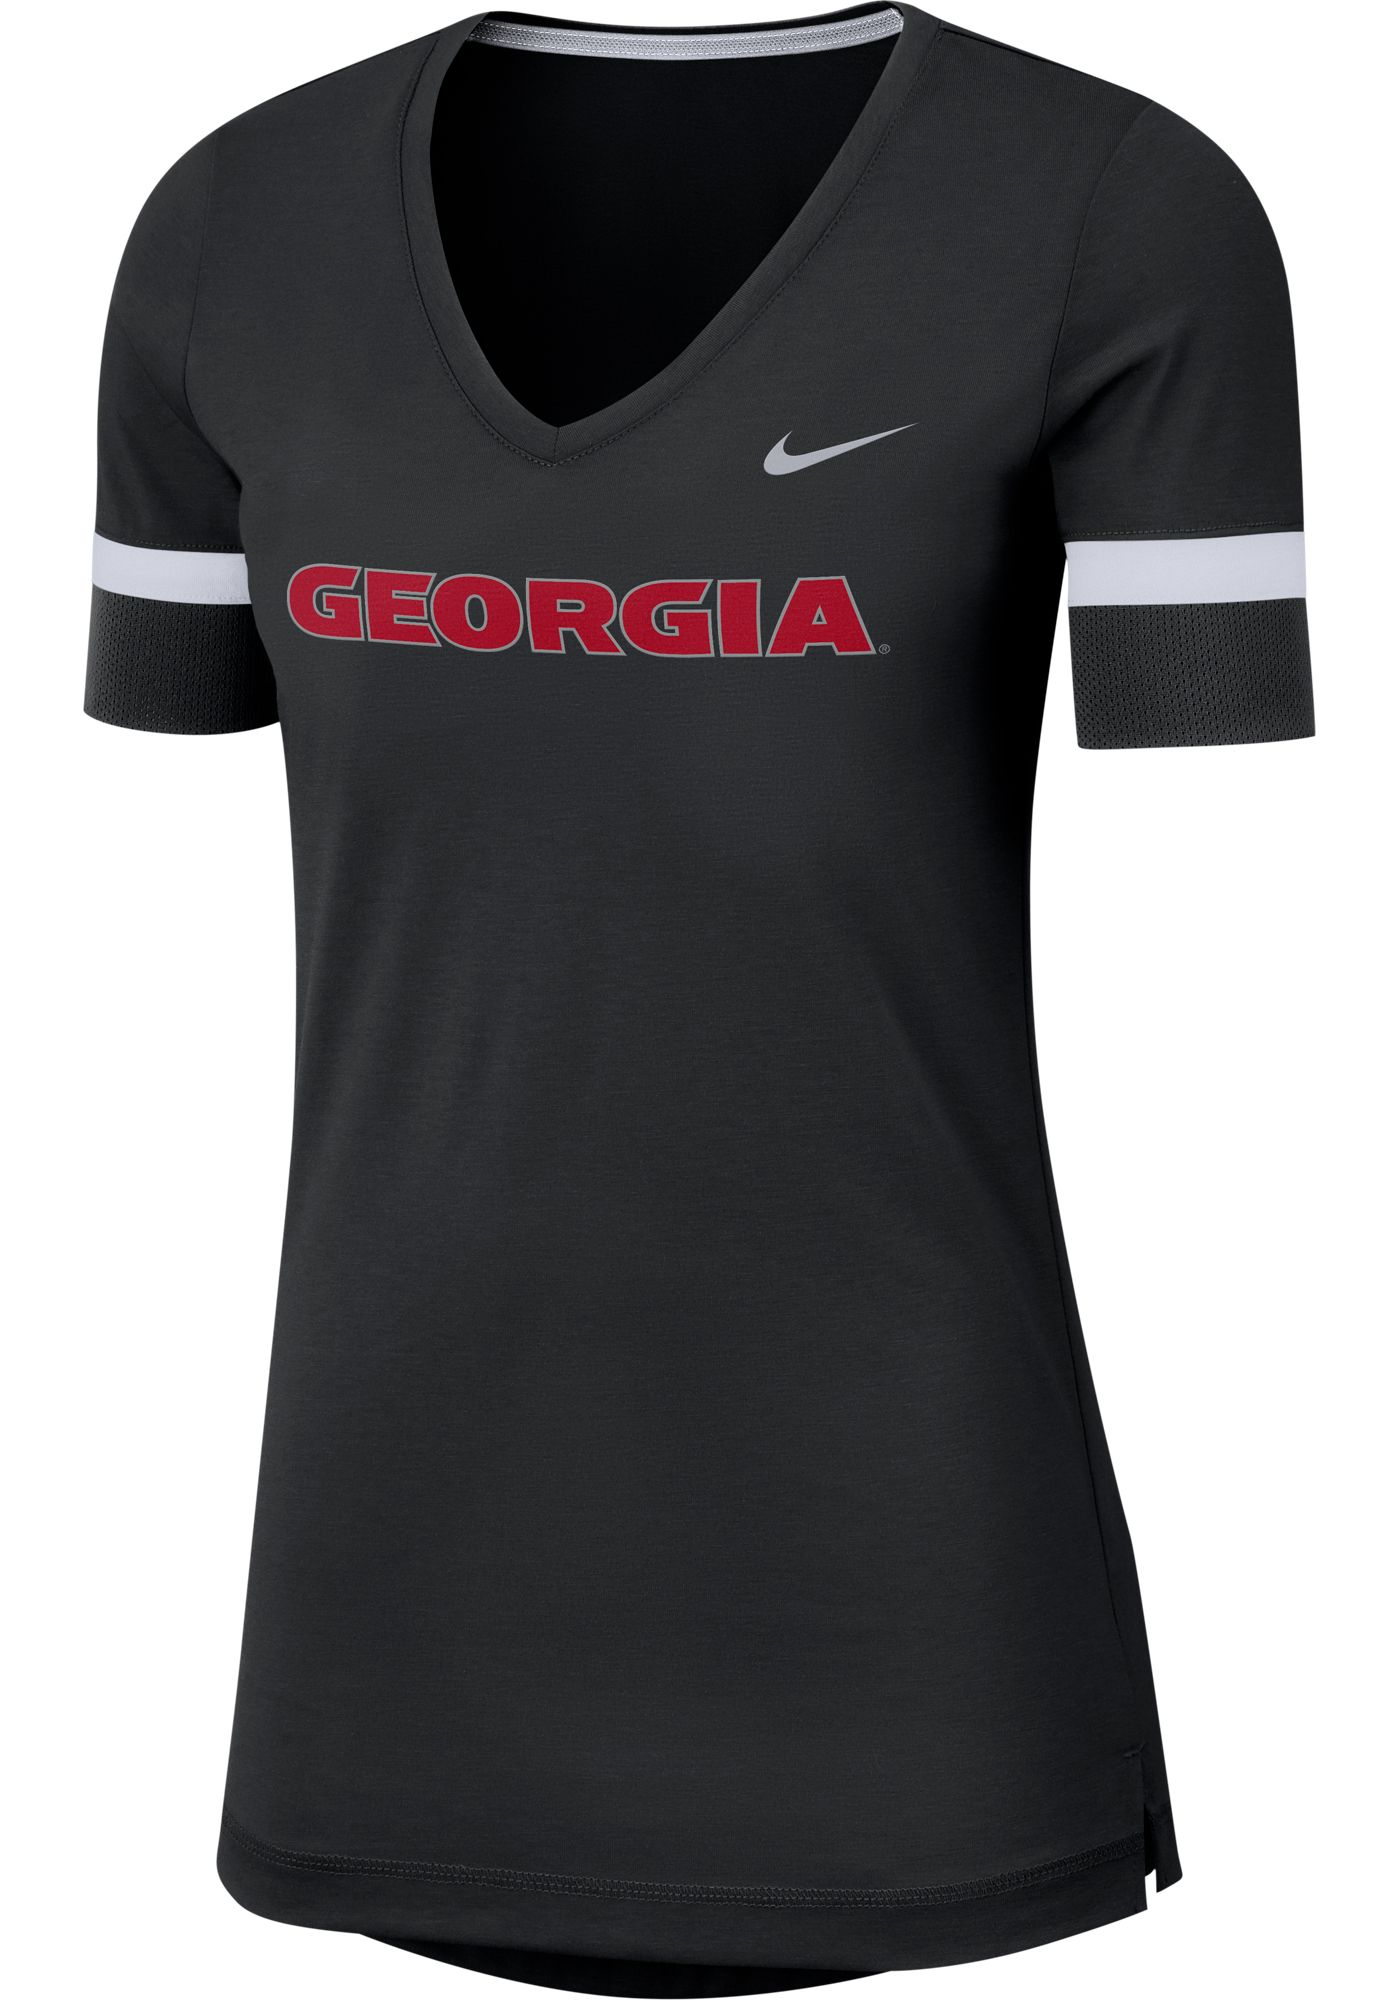 Nike Women's Georgia Bulldogs Dri-FIT Fan V-Neck Black T-Shirt